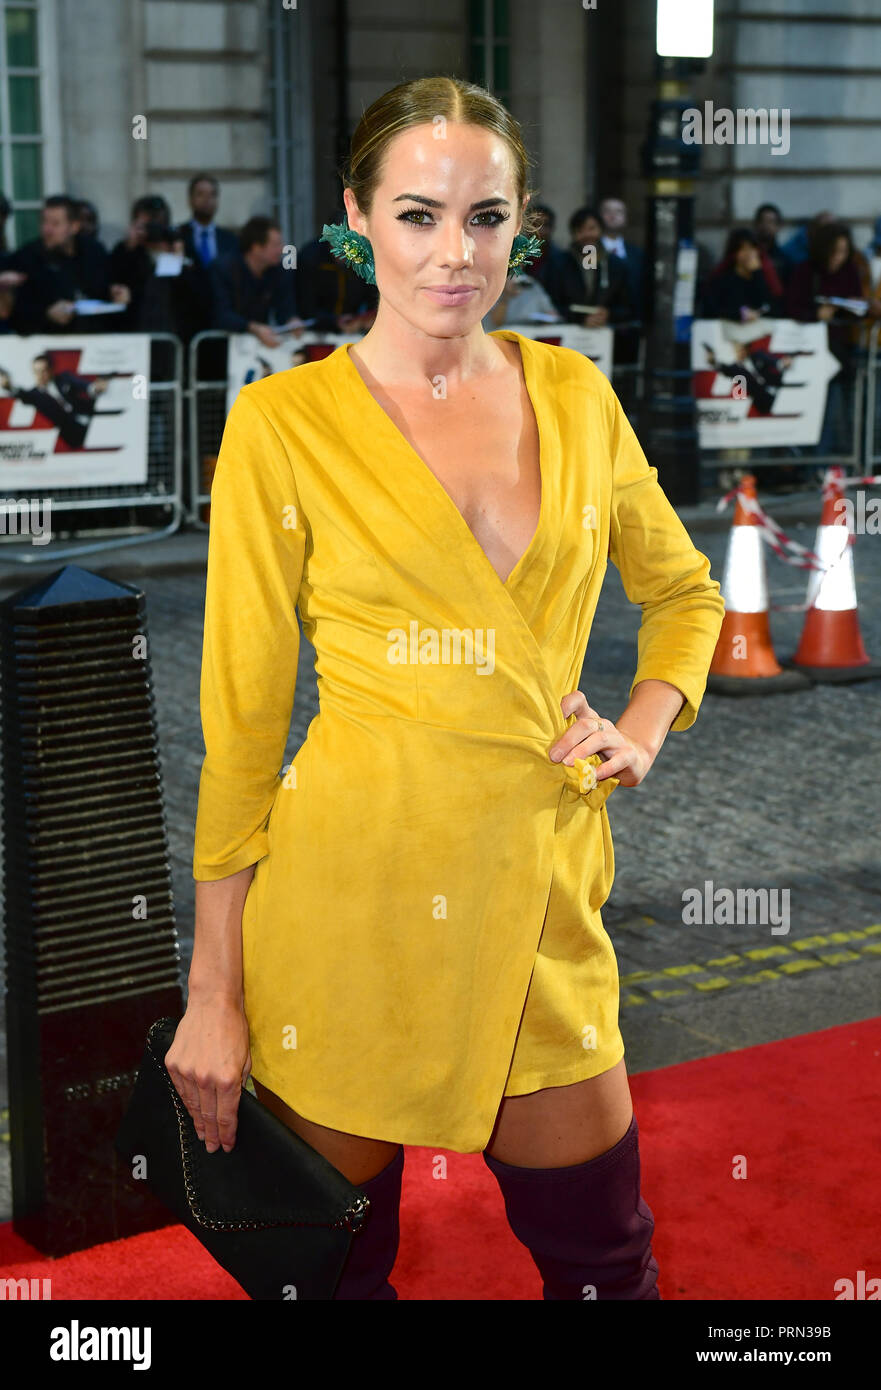 Emma Conybeare attending the Johnny English Strikes Again screening held at Curzon Mayfair, London. - Stock Image